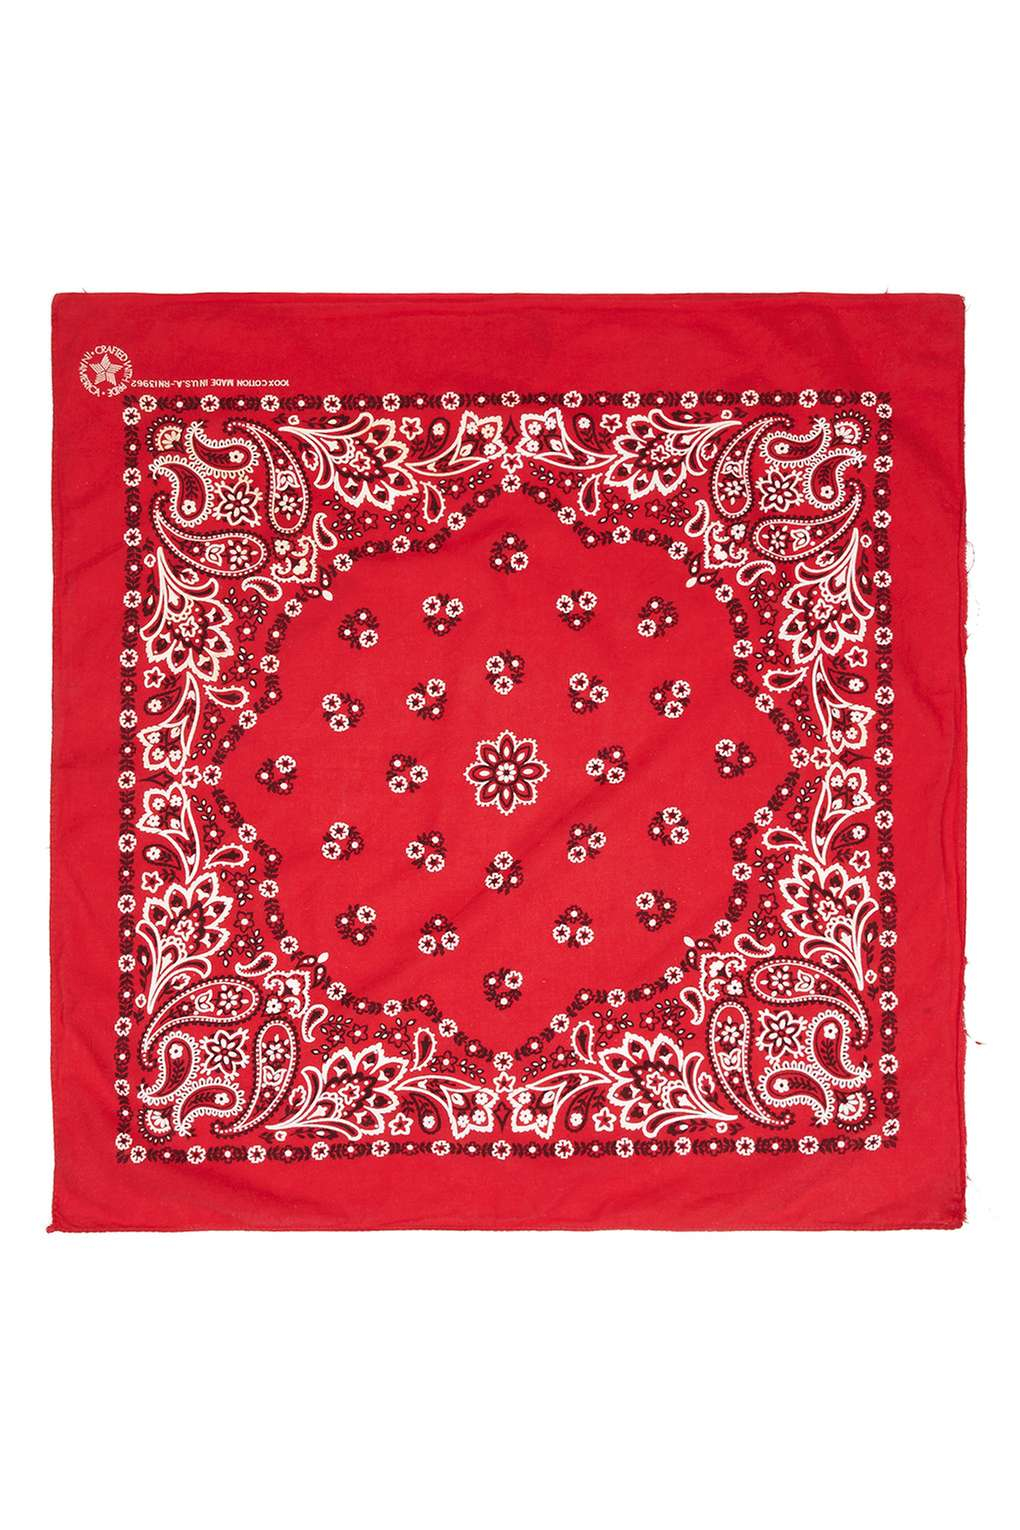 topshop-red-paisley-print-neckerchief-product-0-993516961-normal.jpeg